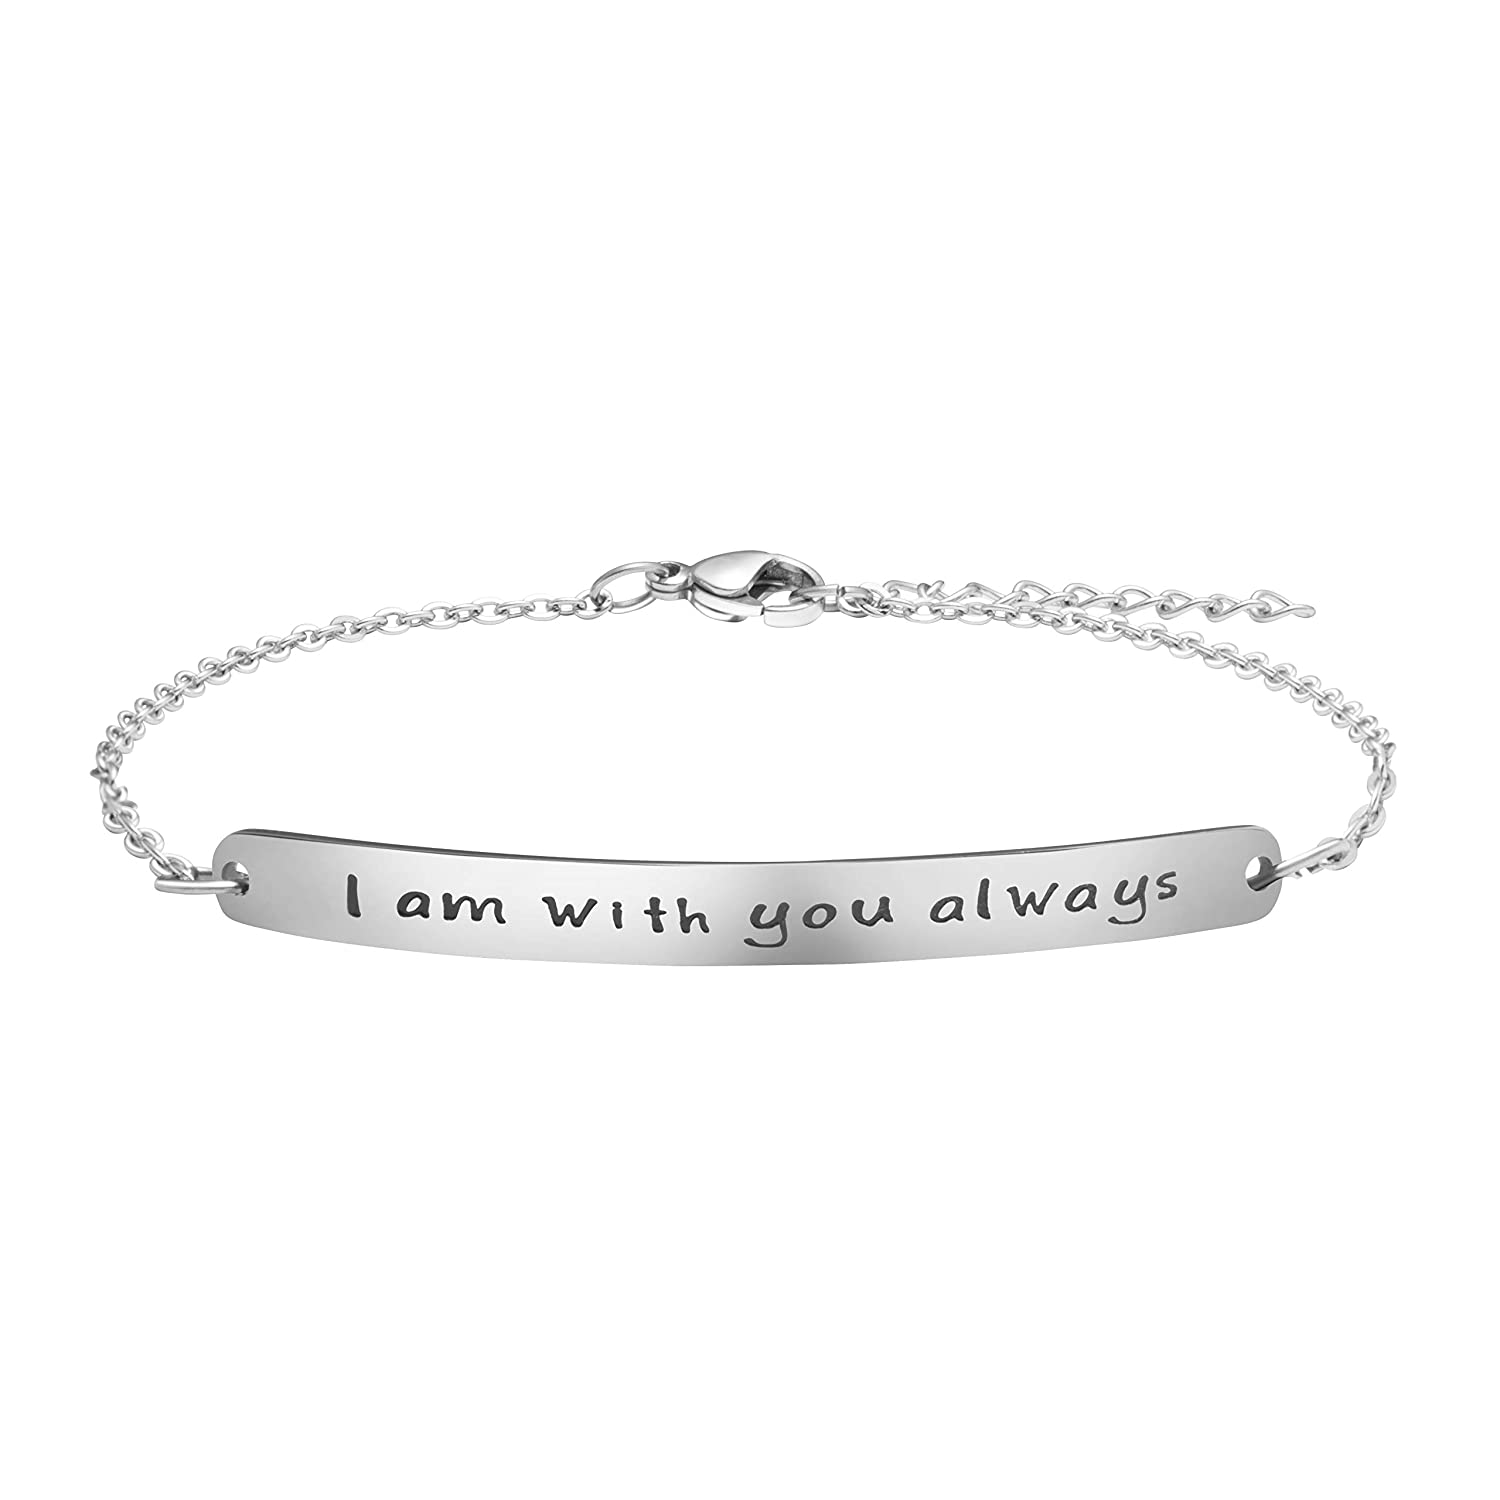 Joycuff Christian Bracelets Inspirational Motivational Jewelry Graduation Gift for Friends Christians Mantra I Am with You Always Beiyang BB-0135-F